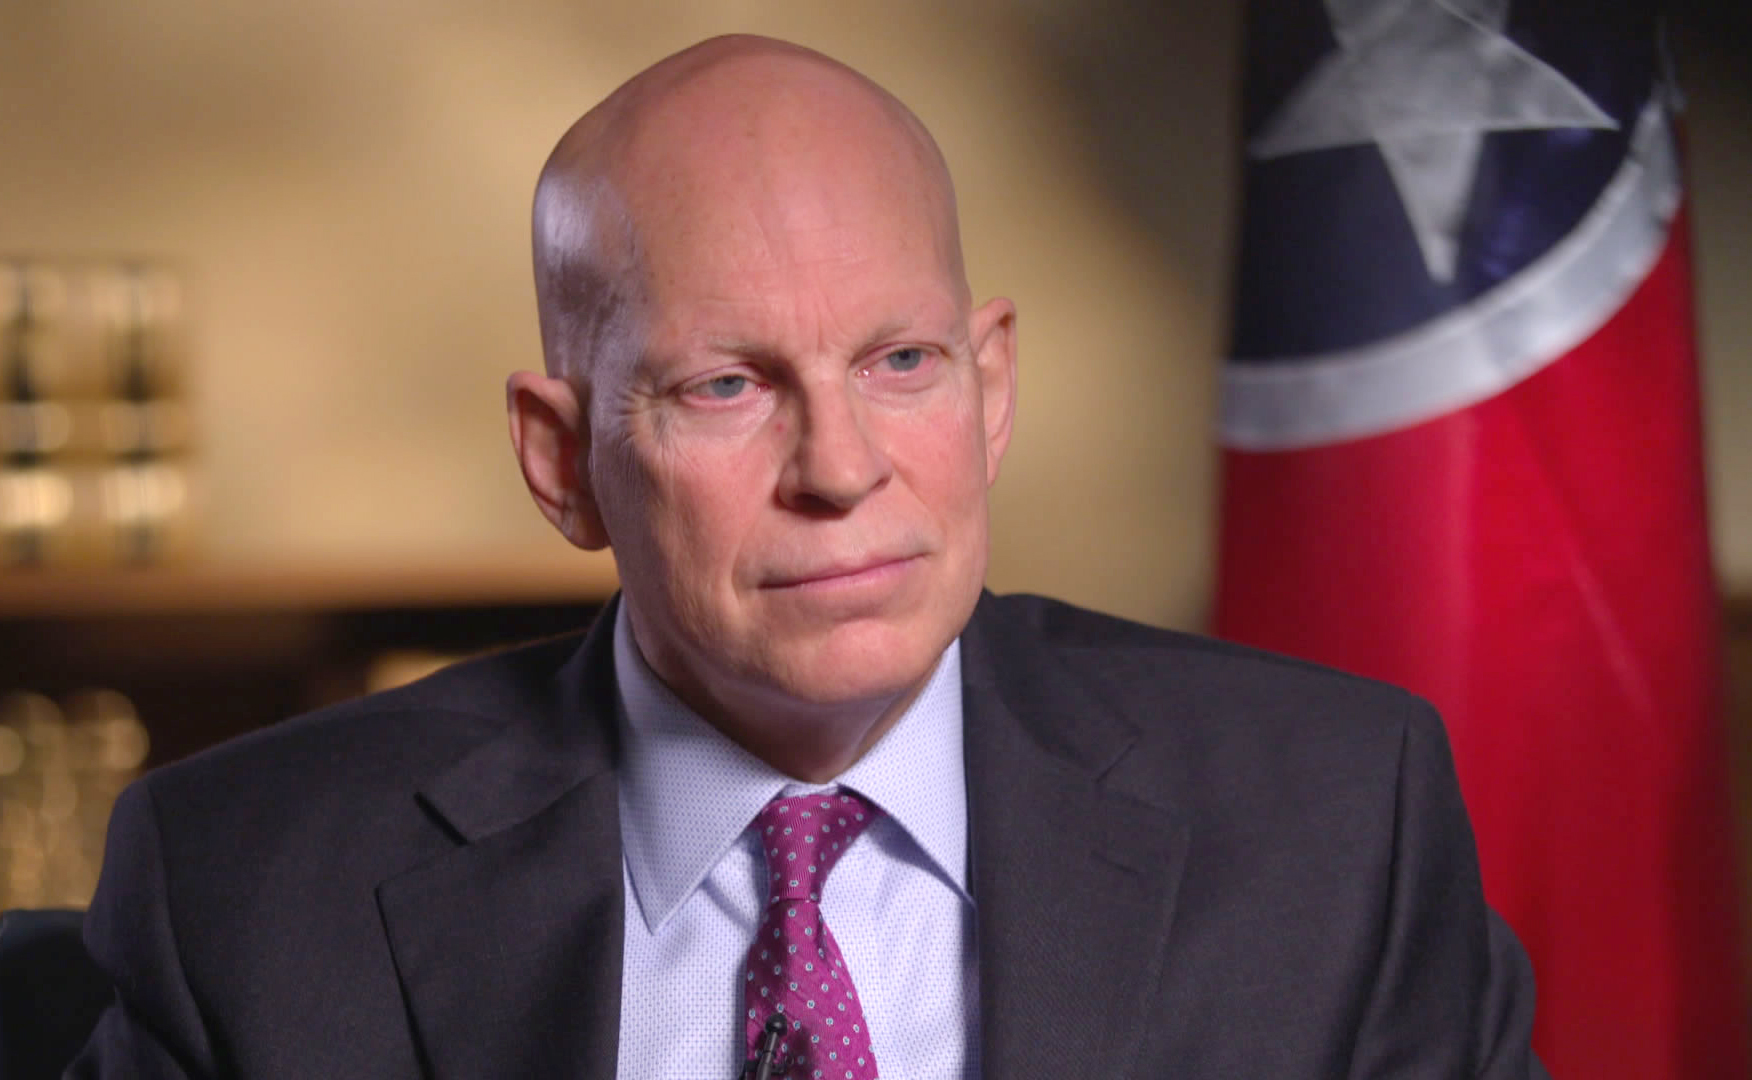 Image: District Attorney General Barry Staubus